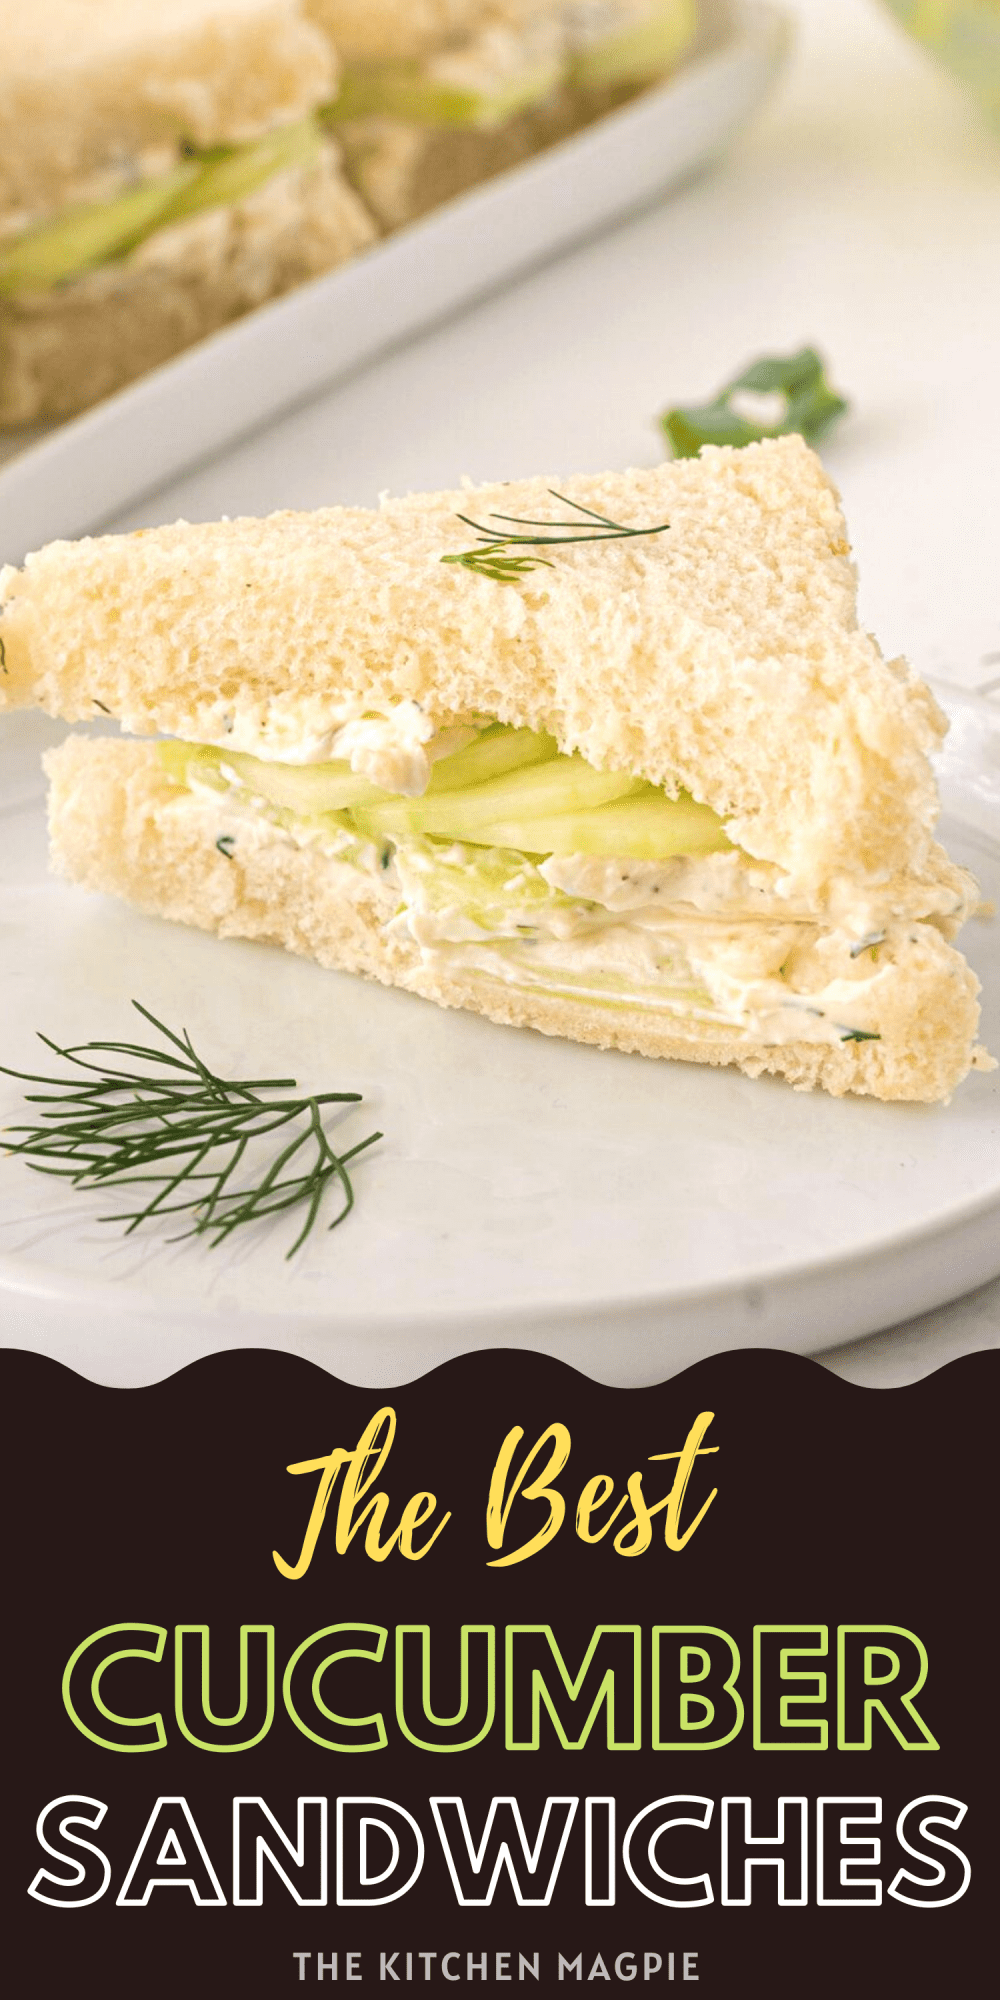 These cucumber sandwiches are perfect for a hot summer's day, or a tea party any time of the year! Fresh sliced cucumbers and a herb and garlic cream cheese filling are sandwiched between crustless white bread for the perfect snack or light lunch!